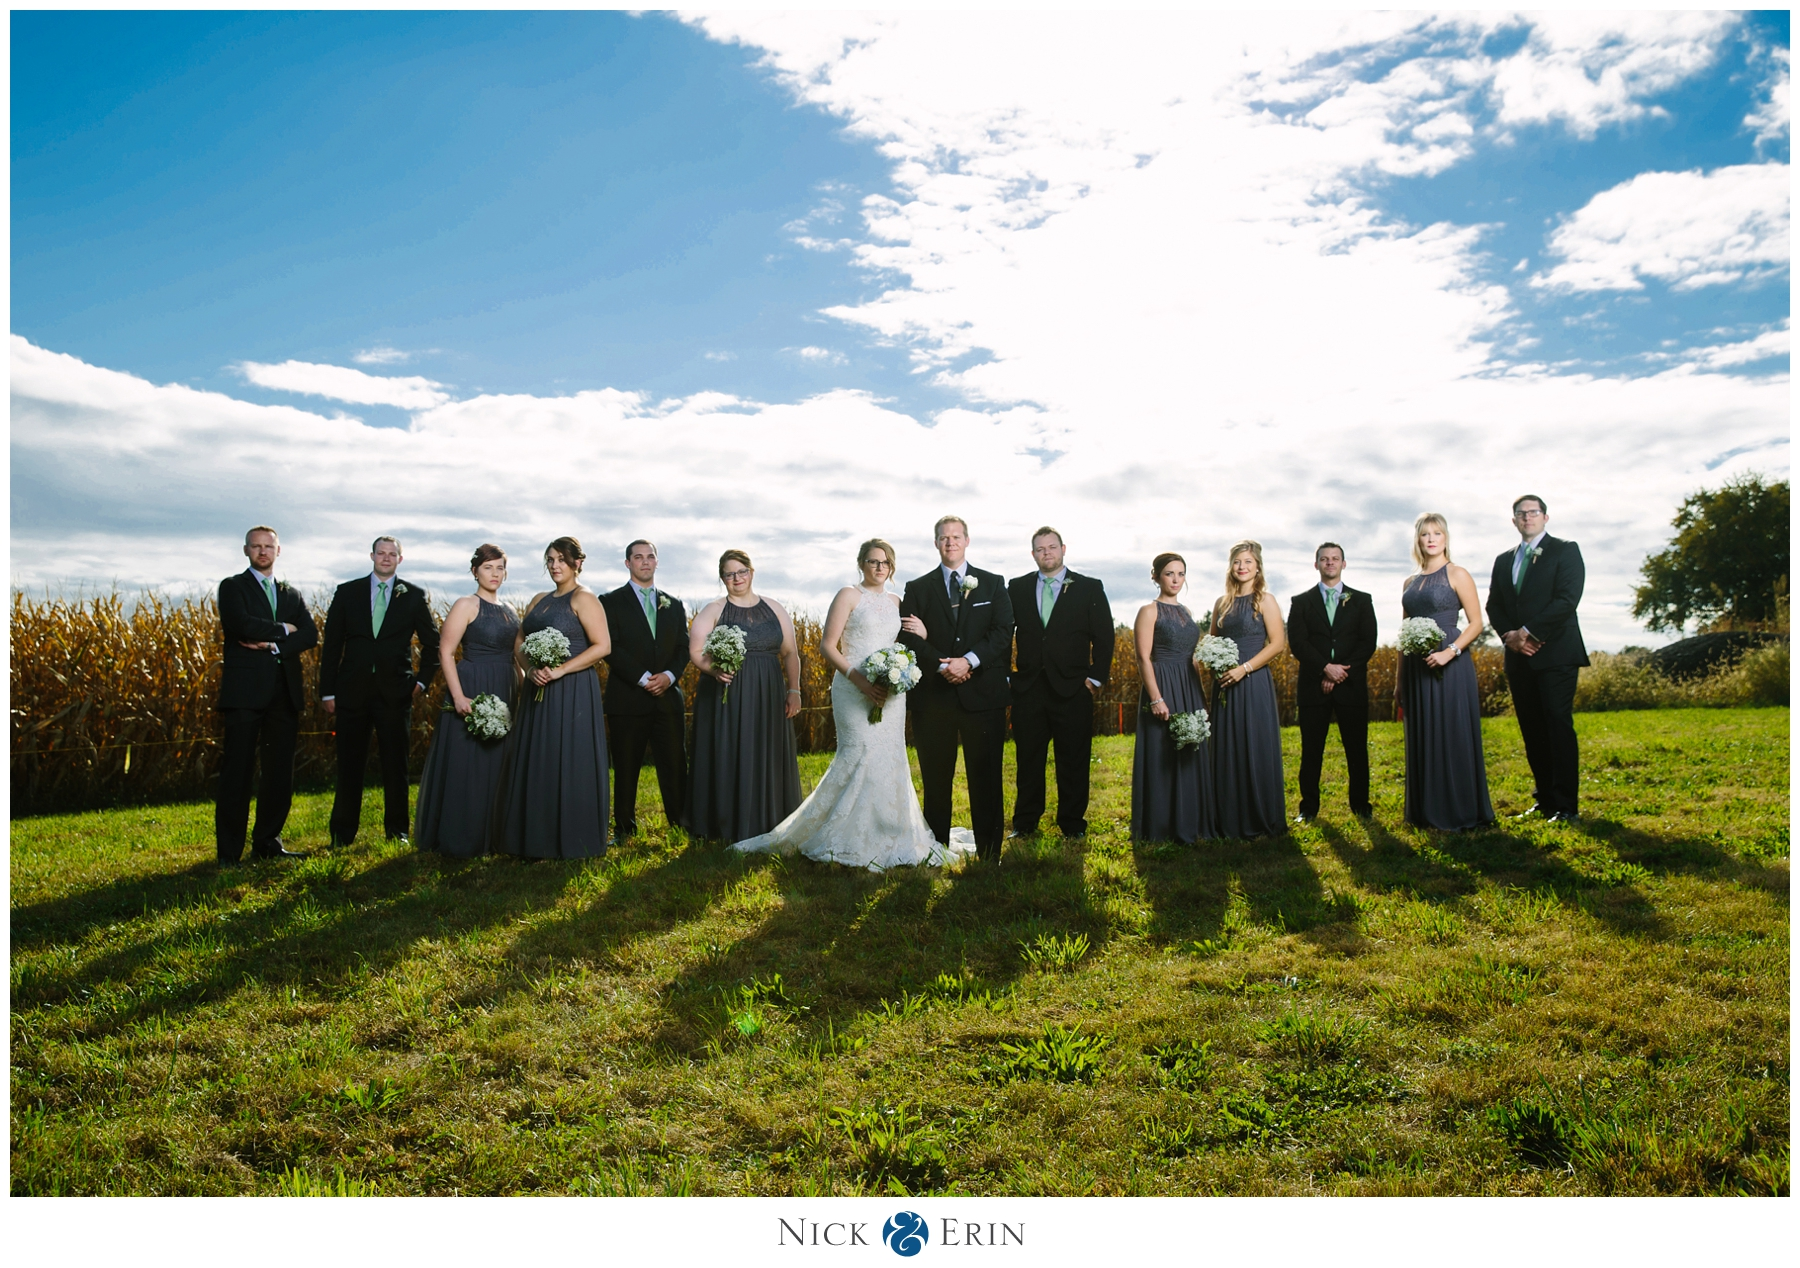 donner_photography_iowa-wedding_katie-chris_0024a